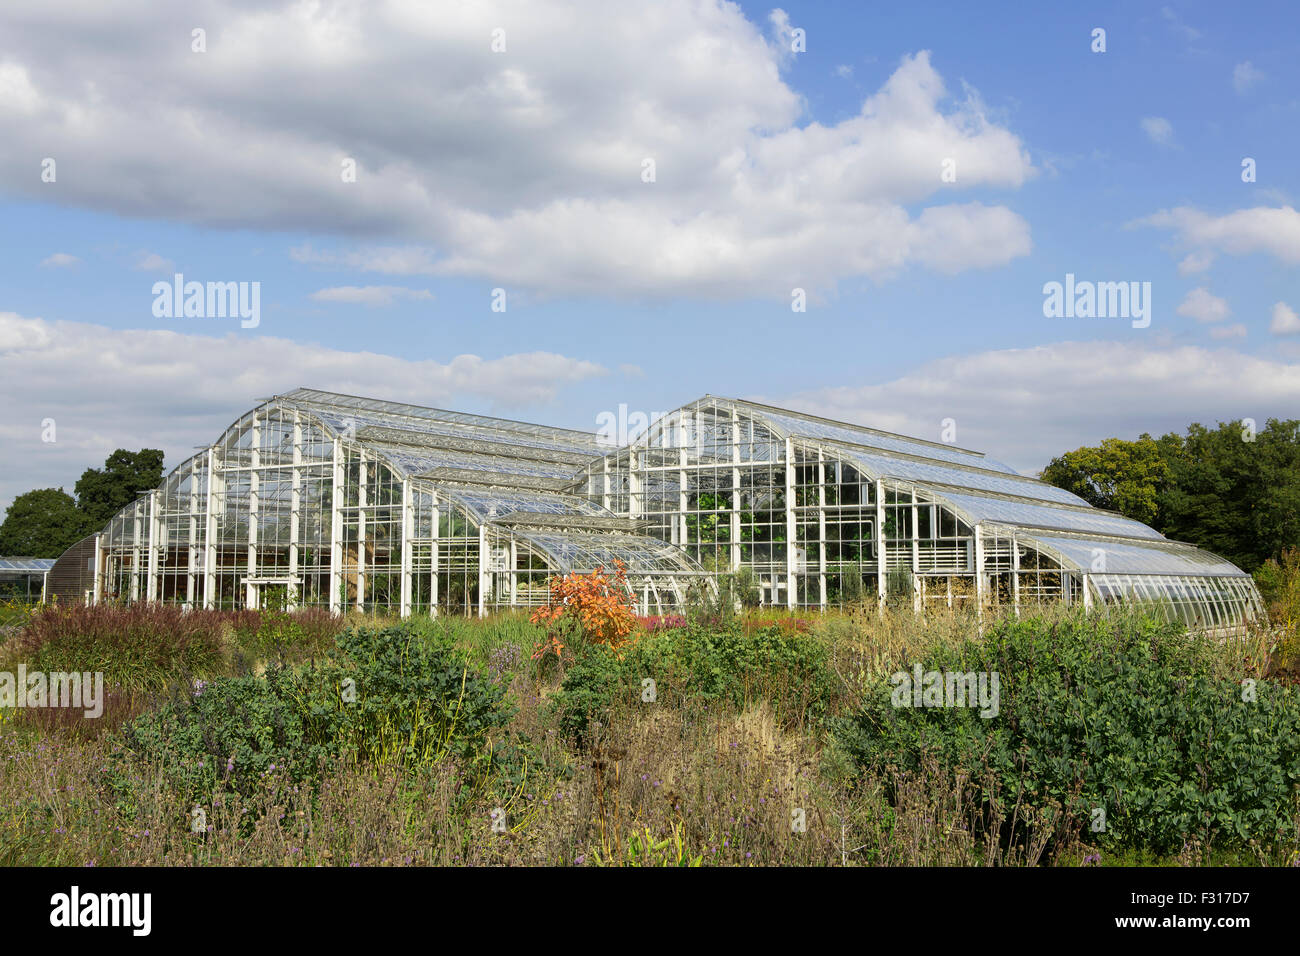 Large Commercial size glass houses. Shot taken across blooming borders - Stock Image